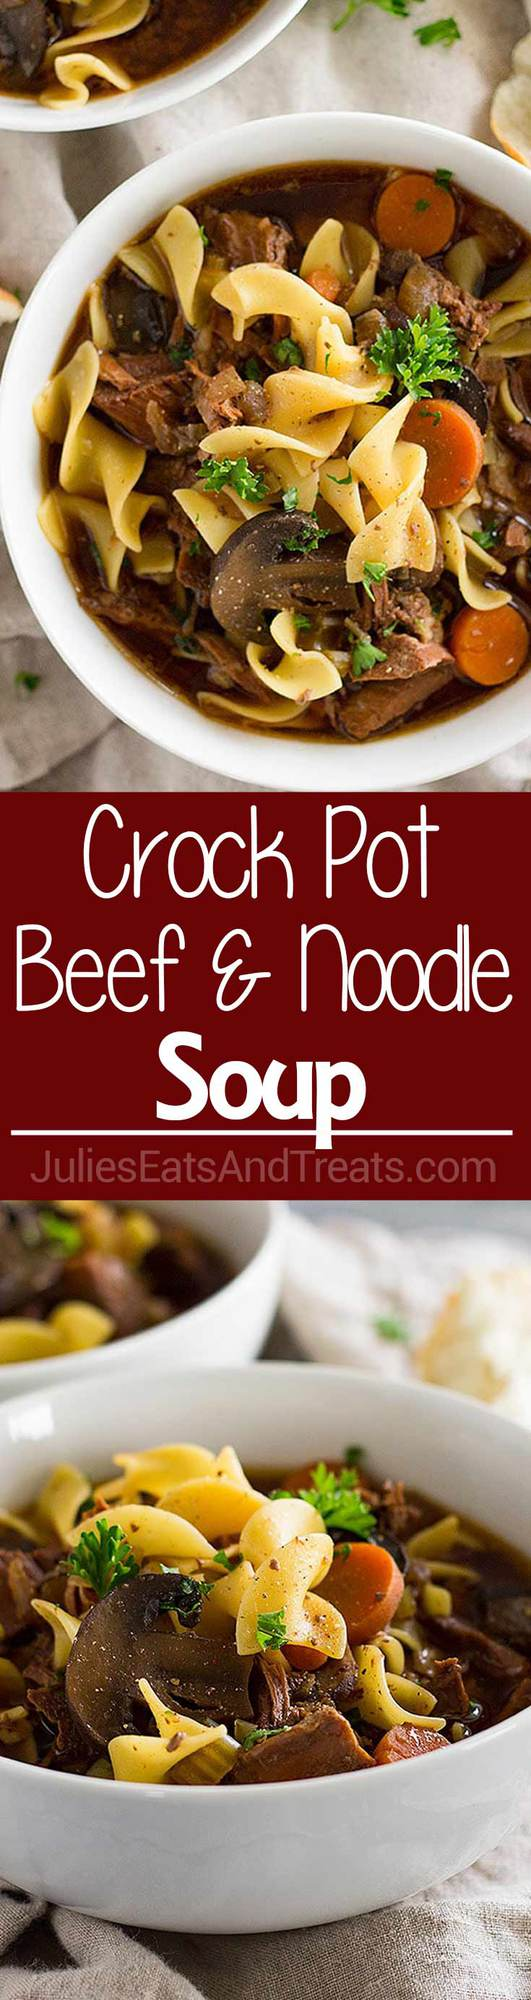 Crock Pot Beef and Noodle Soup ~ Easy Slow Cooker Beef Stew with the Addition of Pasta! Loaded with Stew Meat, Carrots, Celery, Mushrooms and Egg Noodles!